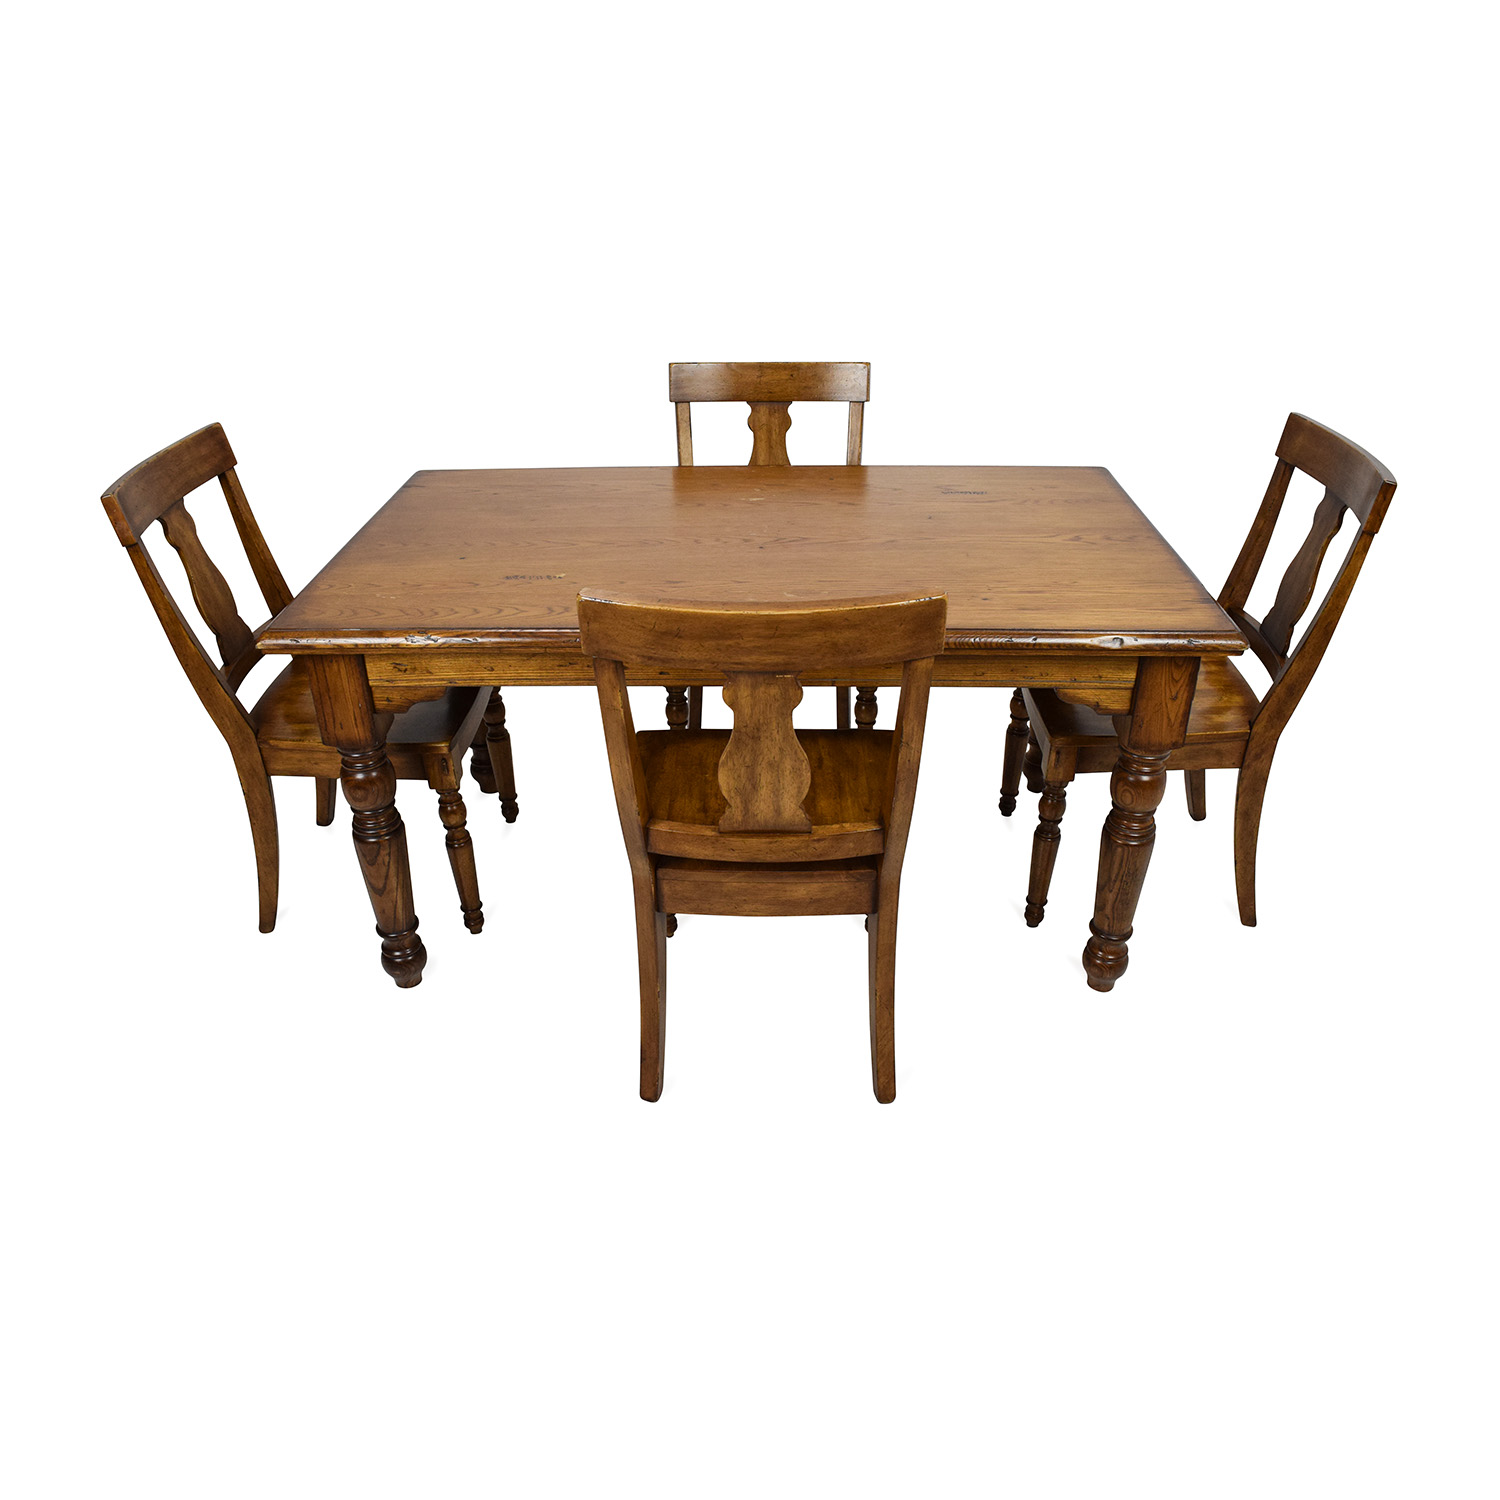 shop Pottery Barn Pottery Barn Solid Wood Dining Set online